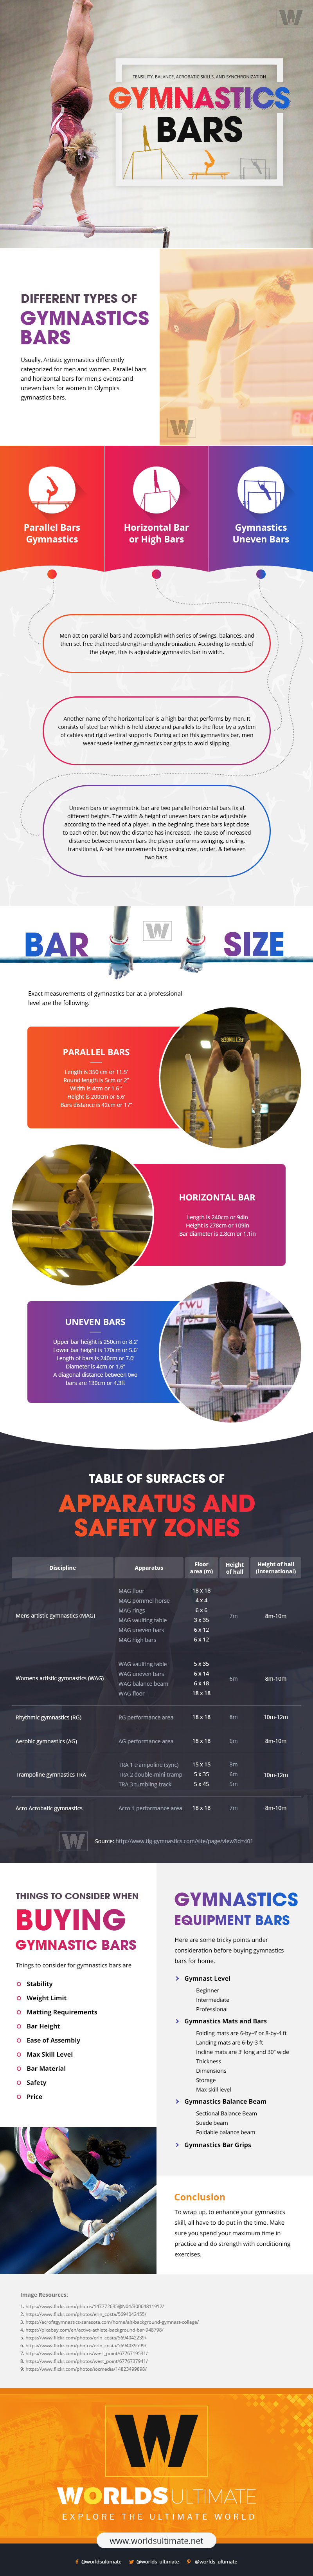 Gymnastics Bars (Reviews, Buying Guide) [Infographic]